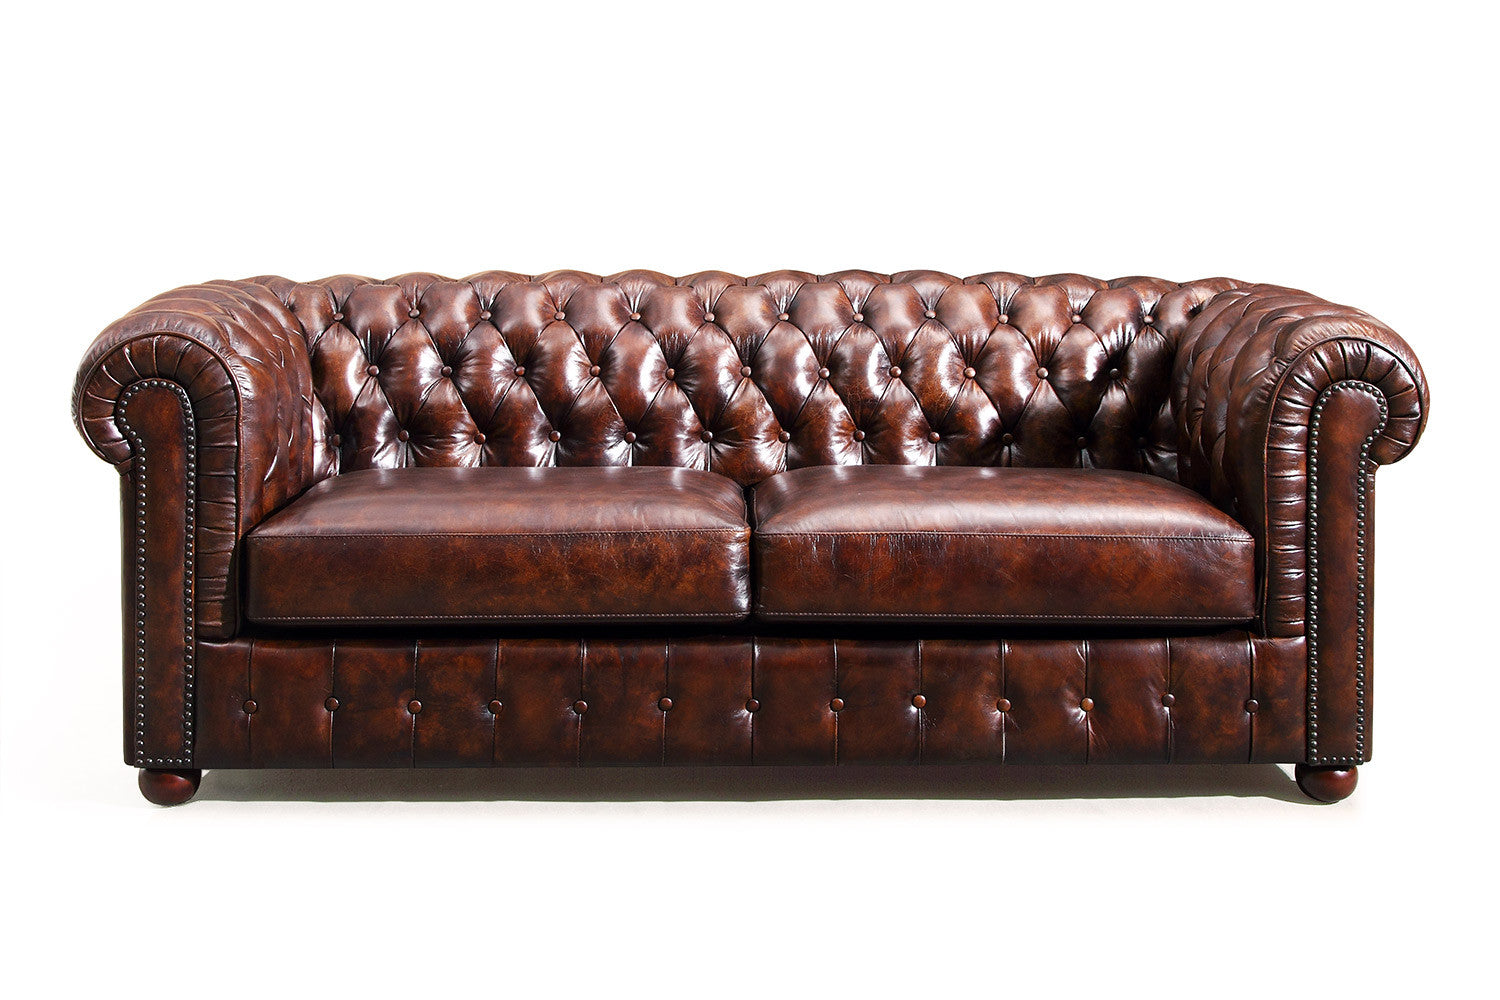 Canap chesterfield original rose moore for Chesterfield canape